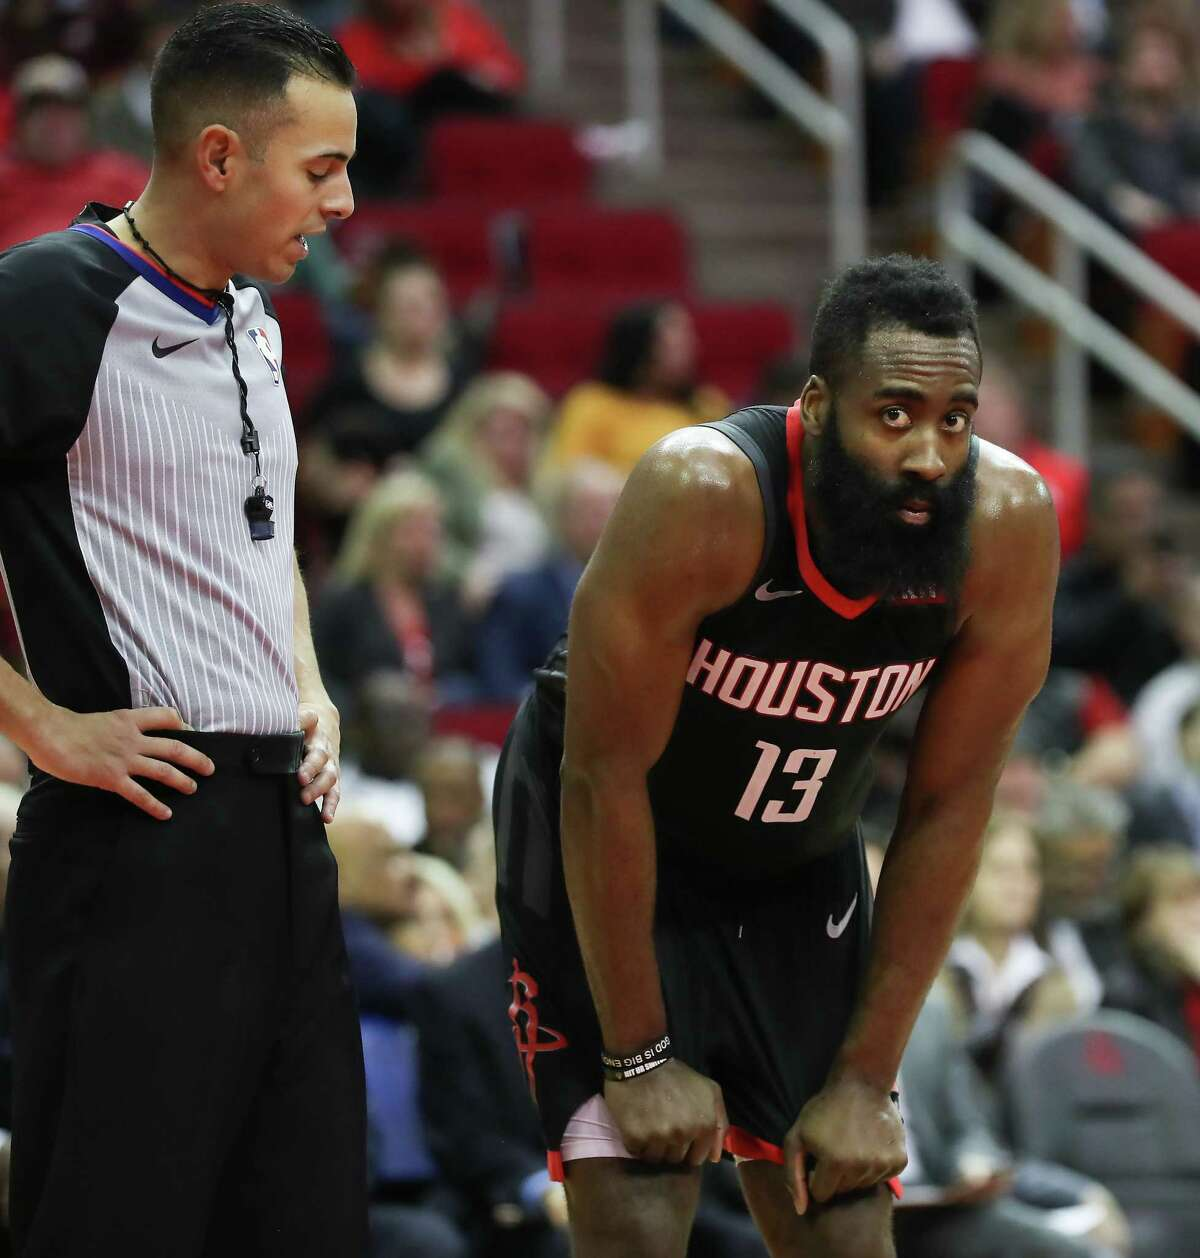 Referee Ray Acosta attempts to talk to Houston Rockets guard James Harden (13) during the 2nd half of an NBA basketball game at Toyota Center on Tuesday, Jan. 29, 2019, in Houston.